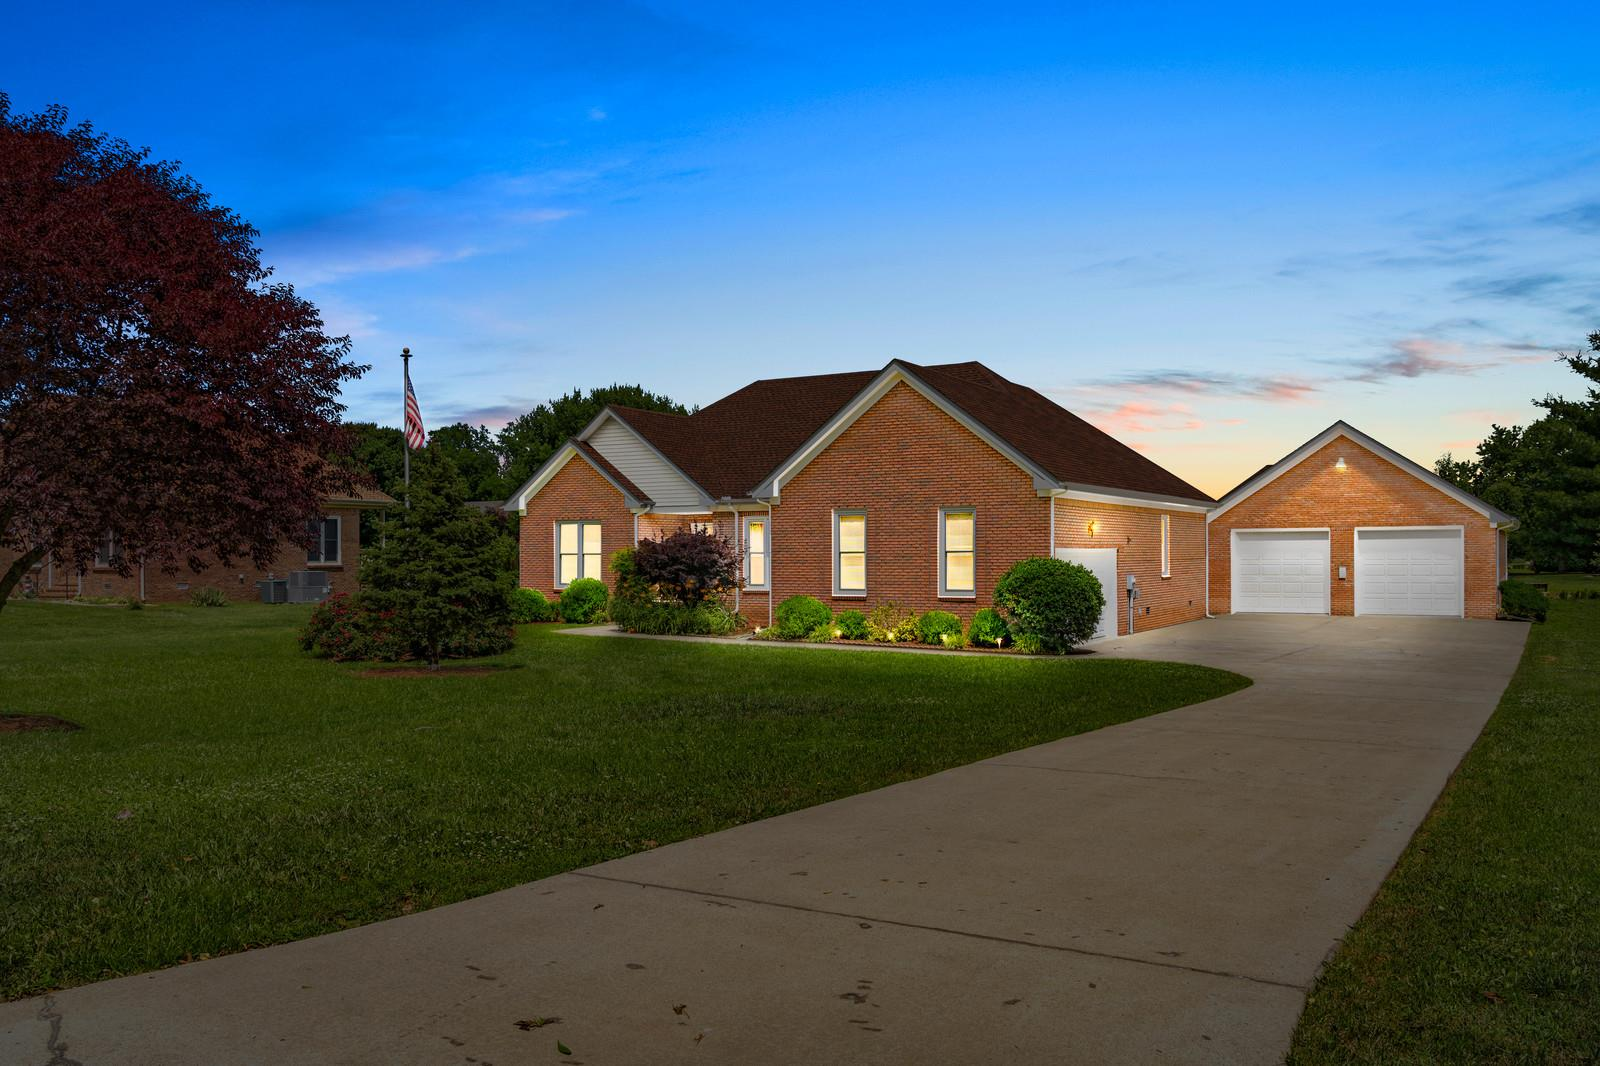 4237 Trenton Rd, Fort Campbell in Montgomery County County, TN 37040 Home for Sale